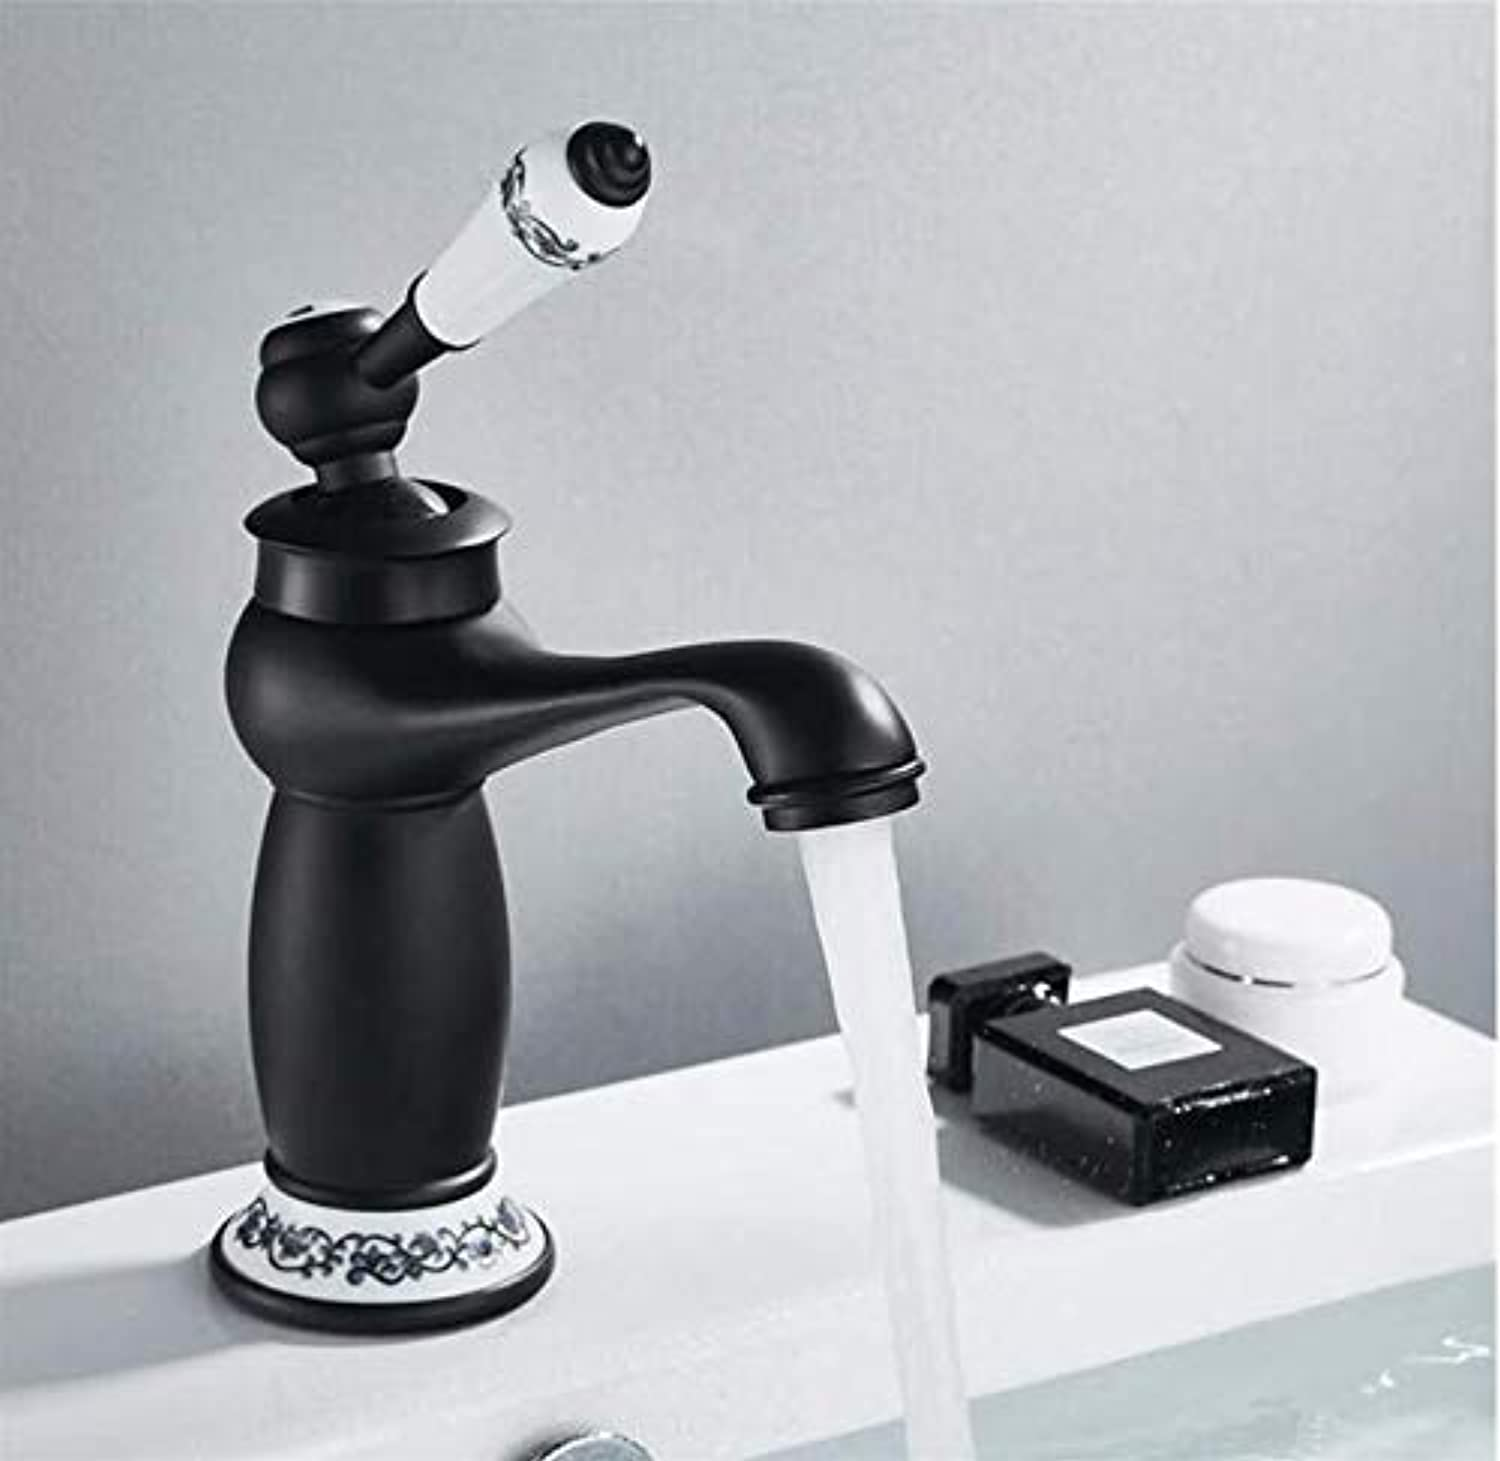 Retro Modern Kitchen Bathroom Retro Single Handle Black Chrome for Cold and Hot Water Sink Mixer Tap Mixer